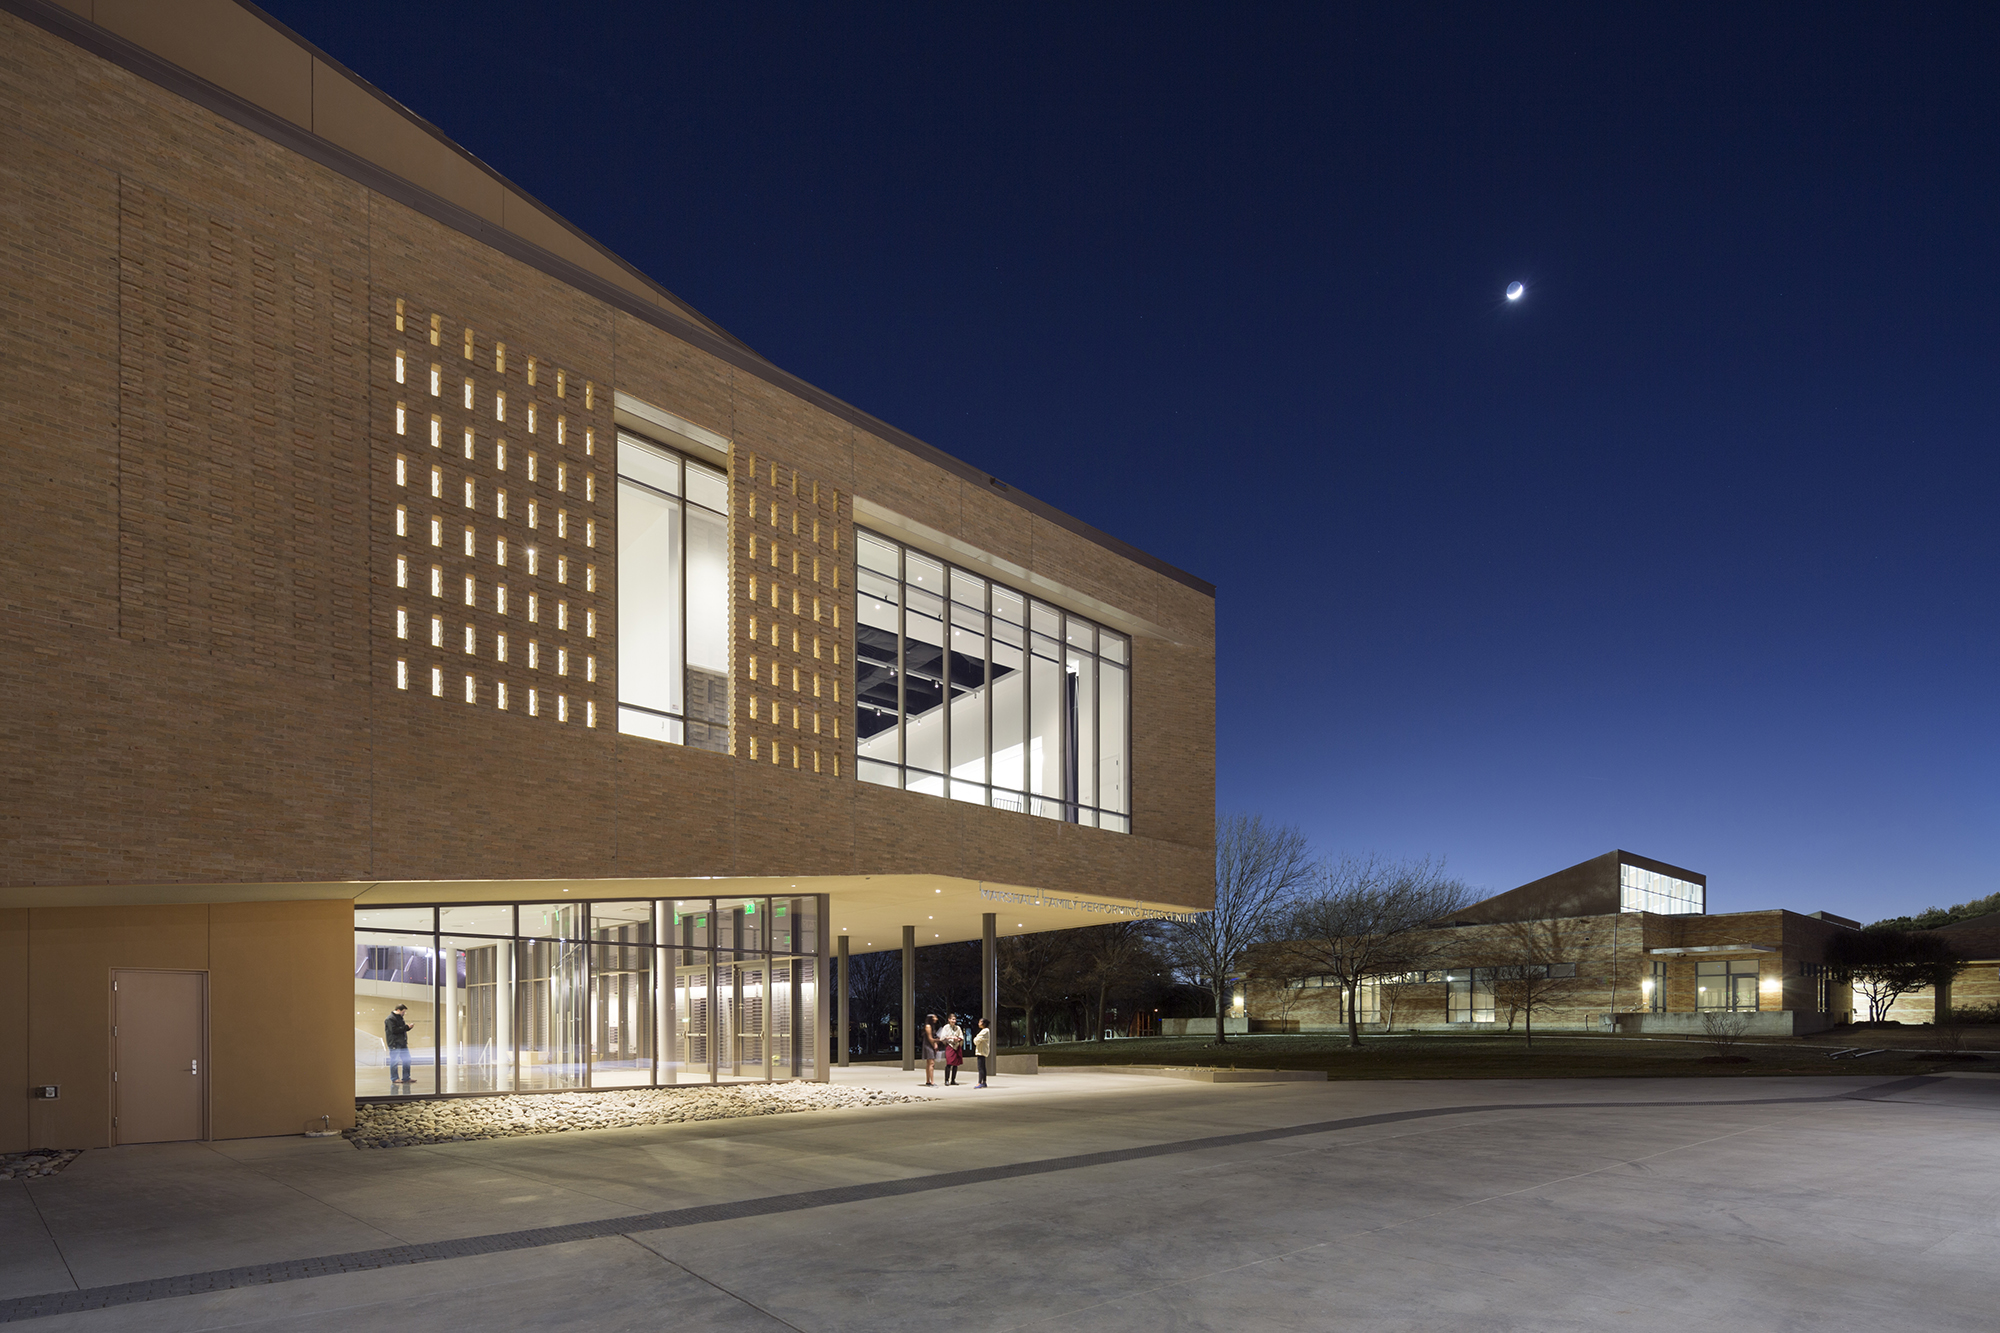 Marshall Family Performing Arts Center Architect